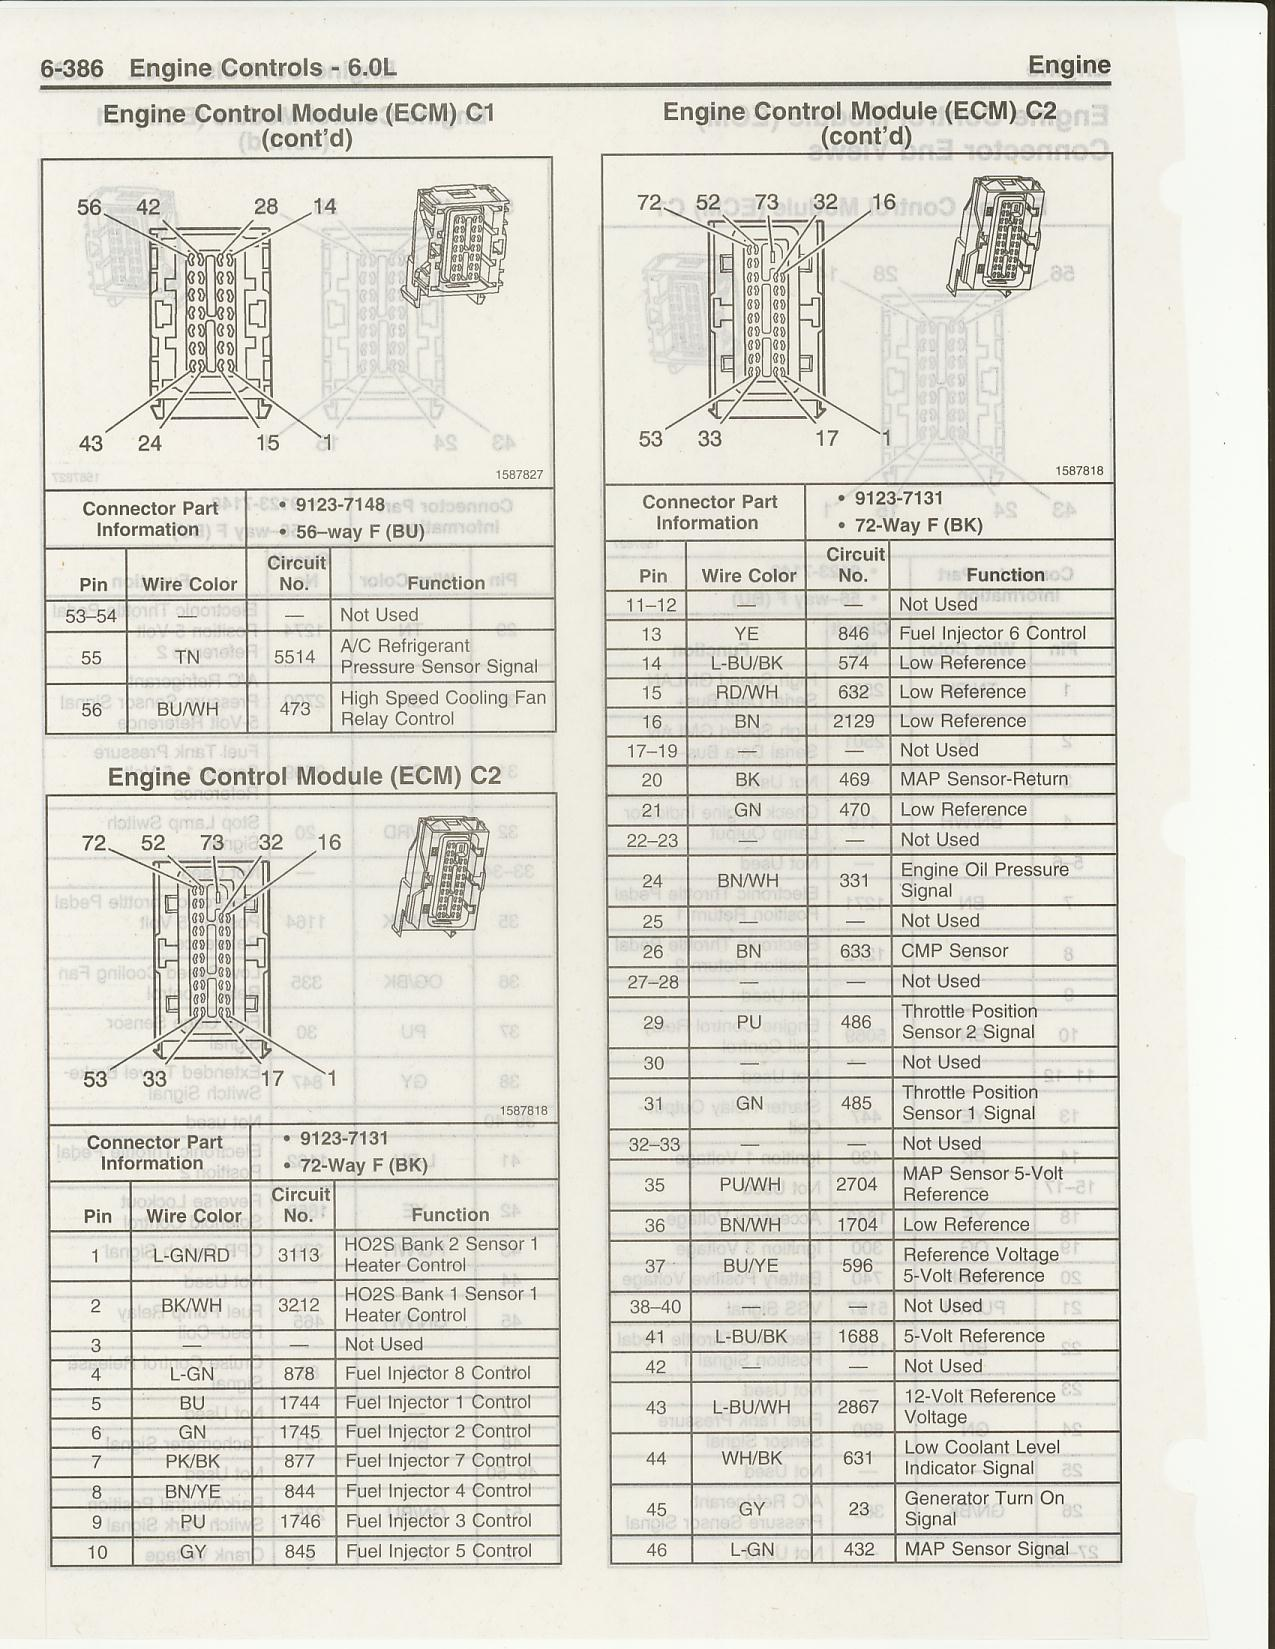 Pinouts And Wiring Diagrams Page 4 Ls1tech Camaro Firebird 2010 Ss Engine Diagram Ls2 C1 C2